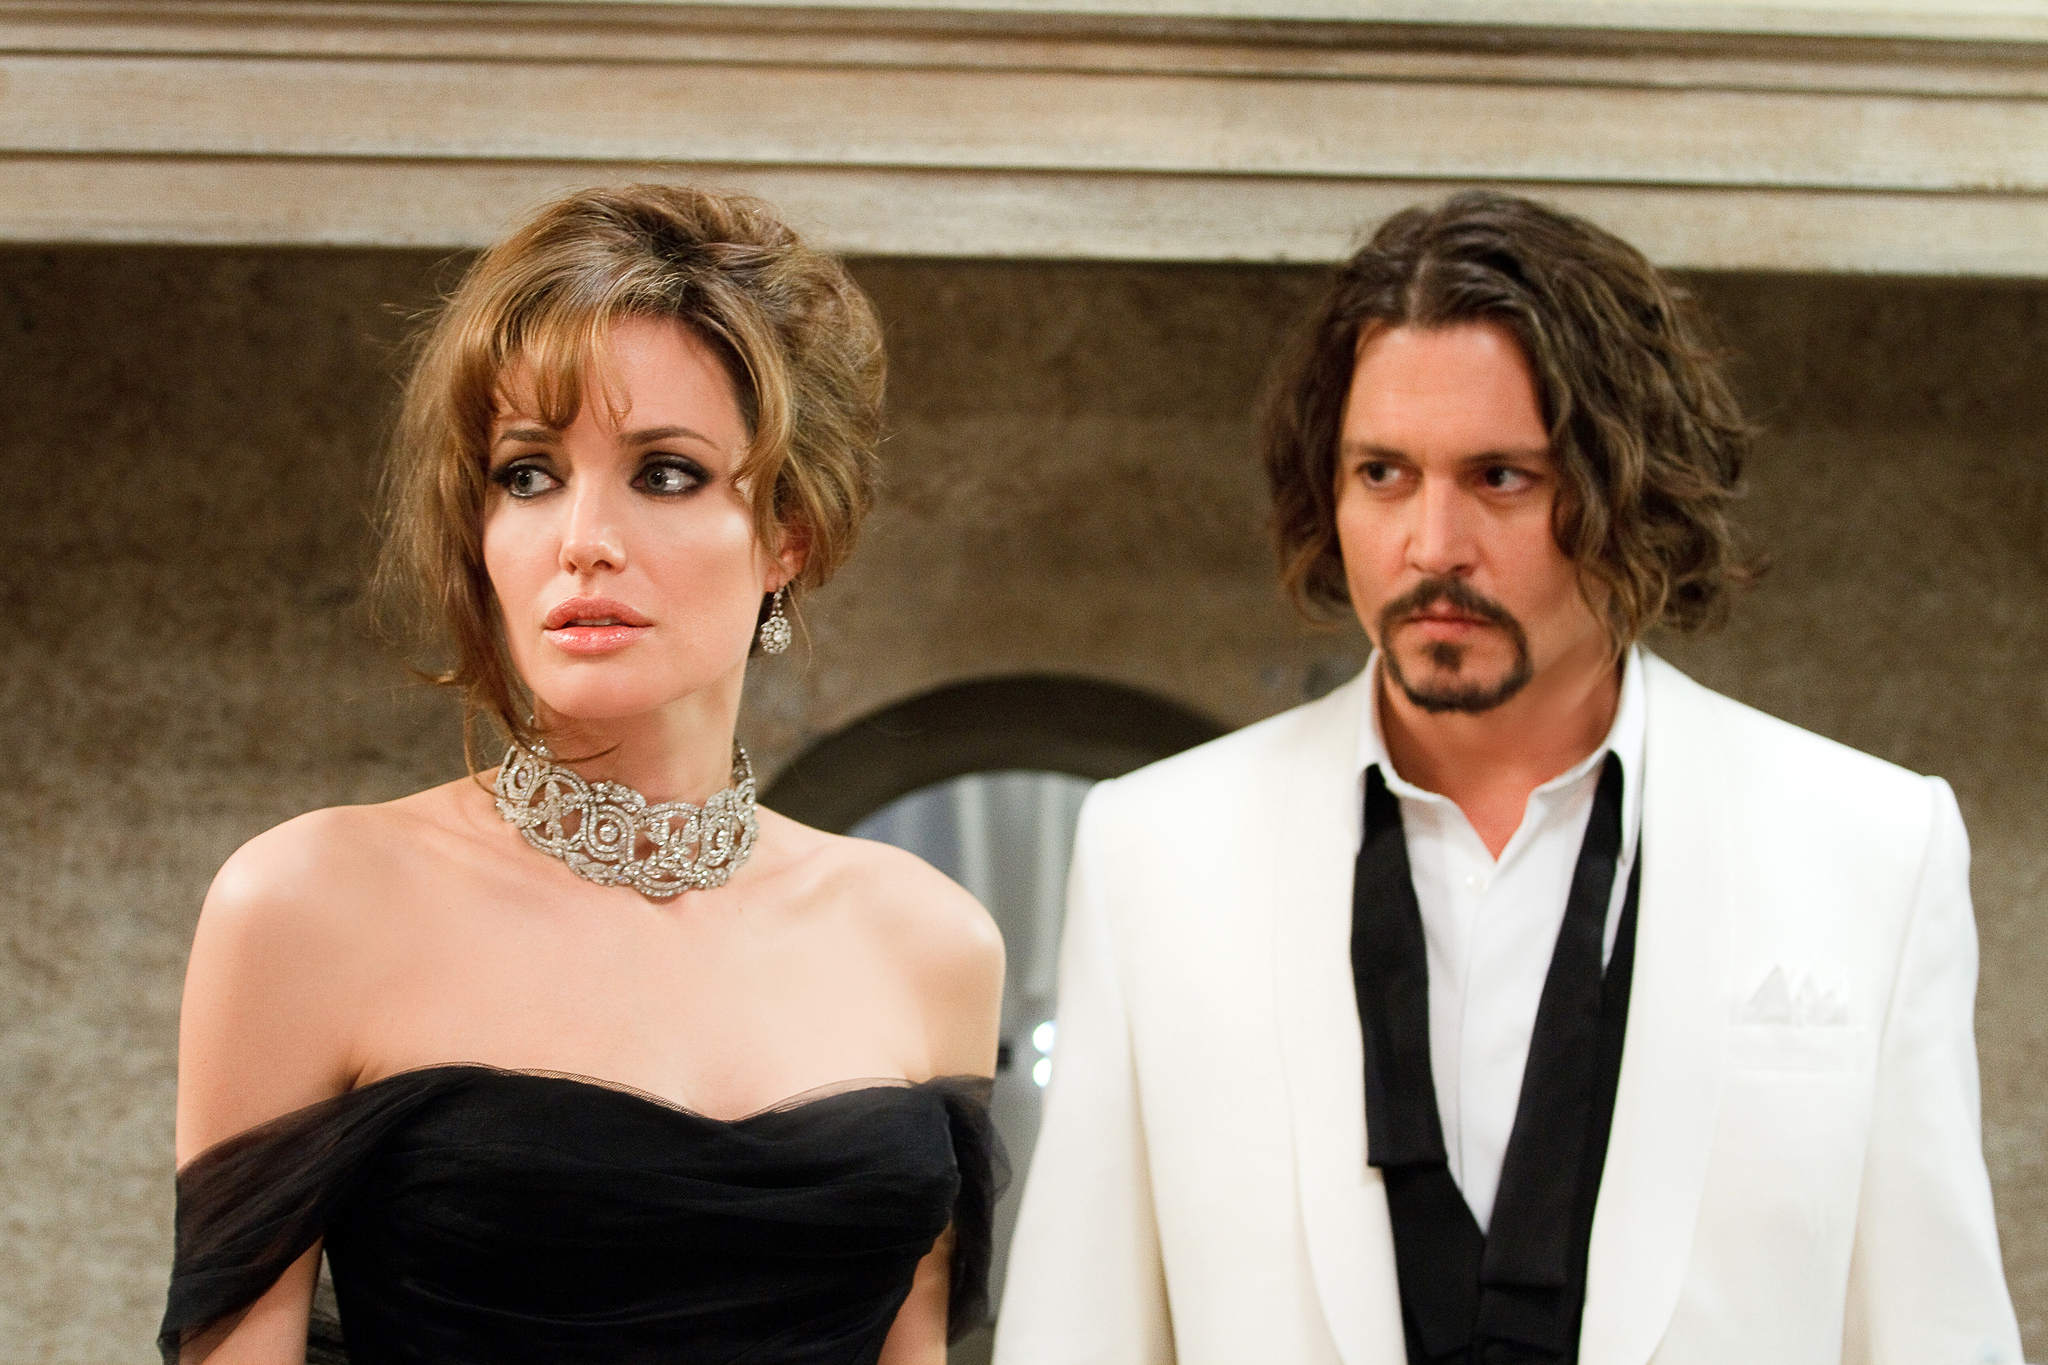 """""""johnny-depp-shooting-his-shot-with-angelina-jolie-hes-reportedly-crushing-hard-and-trying-to-woo-her"""""""